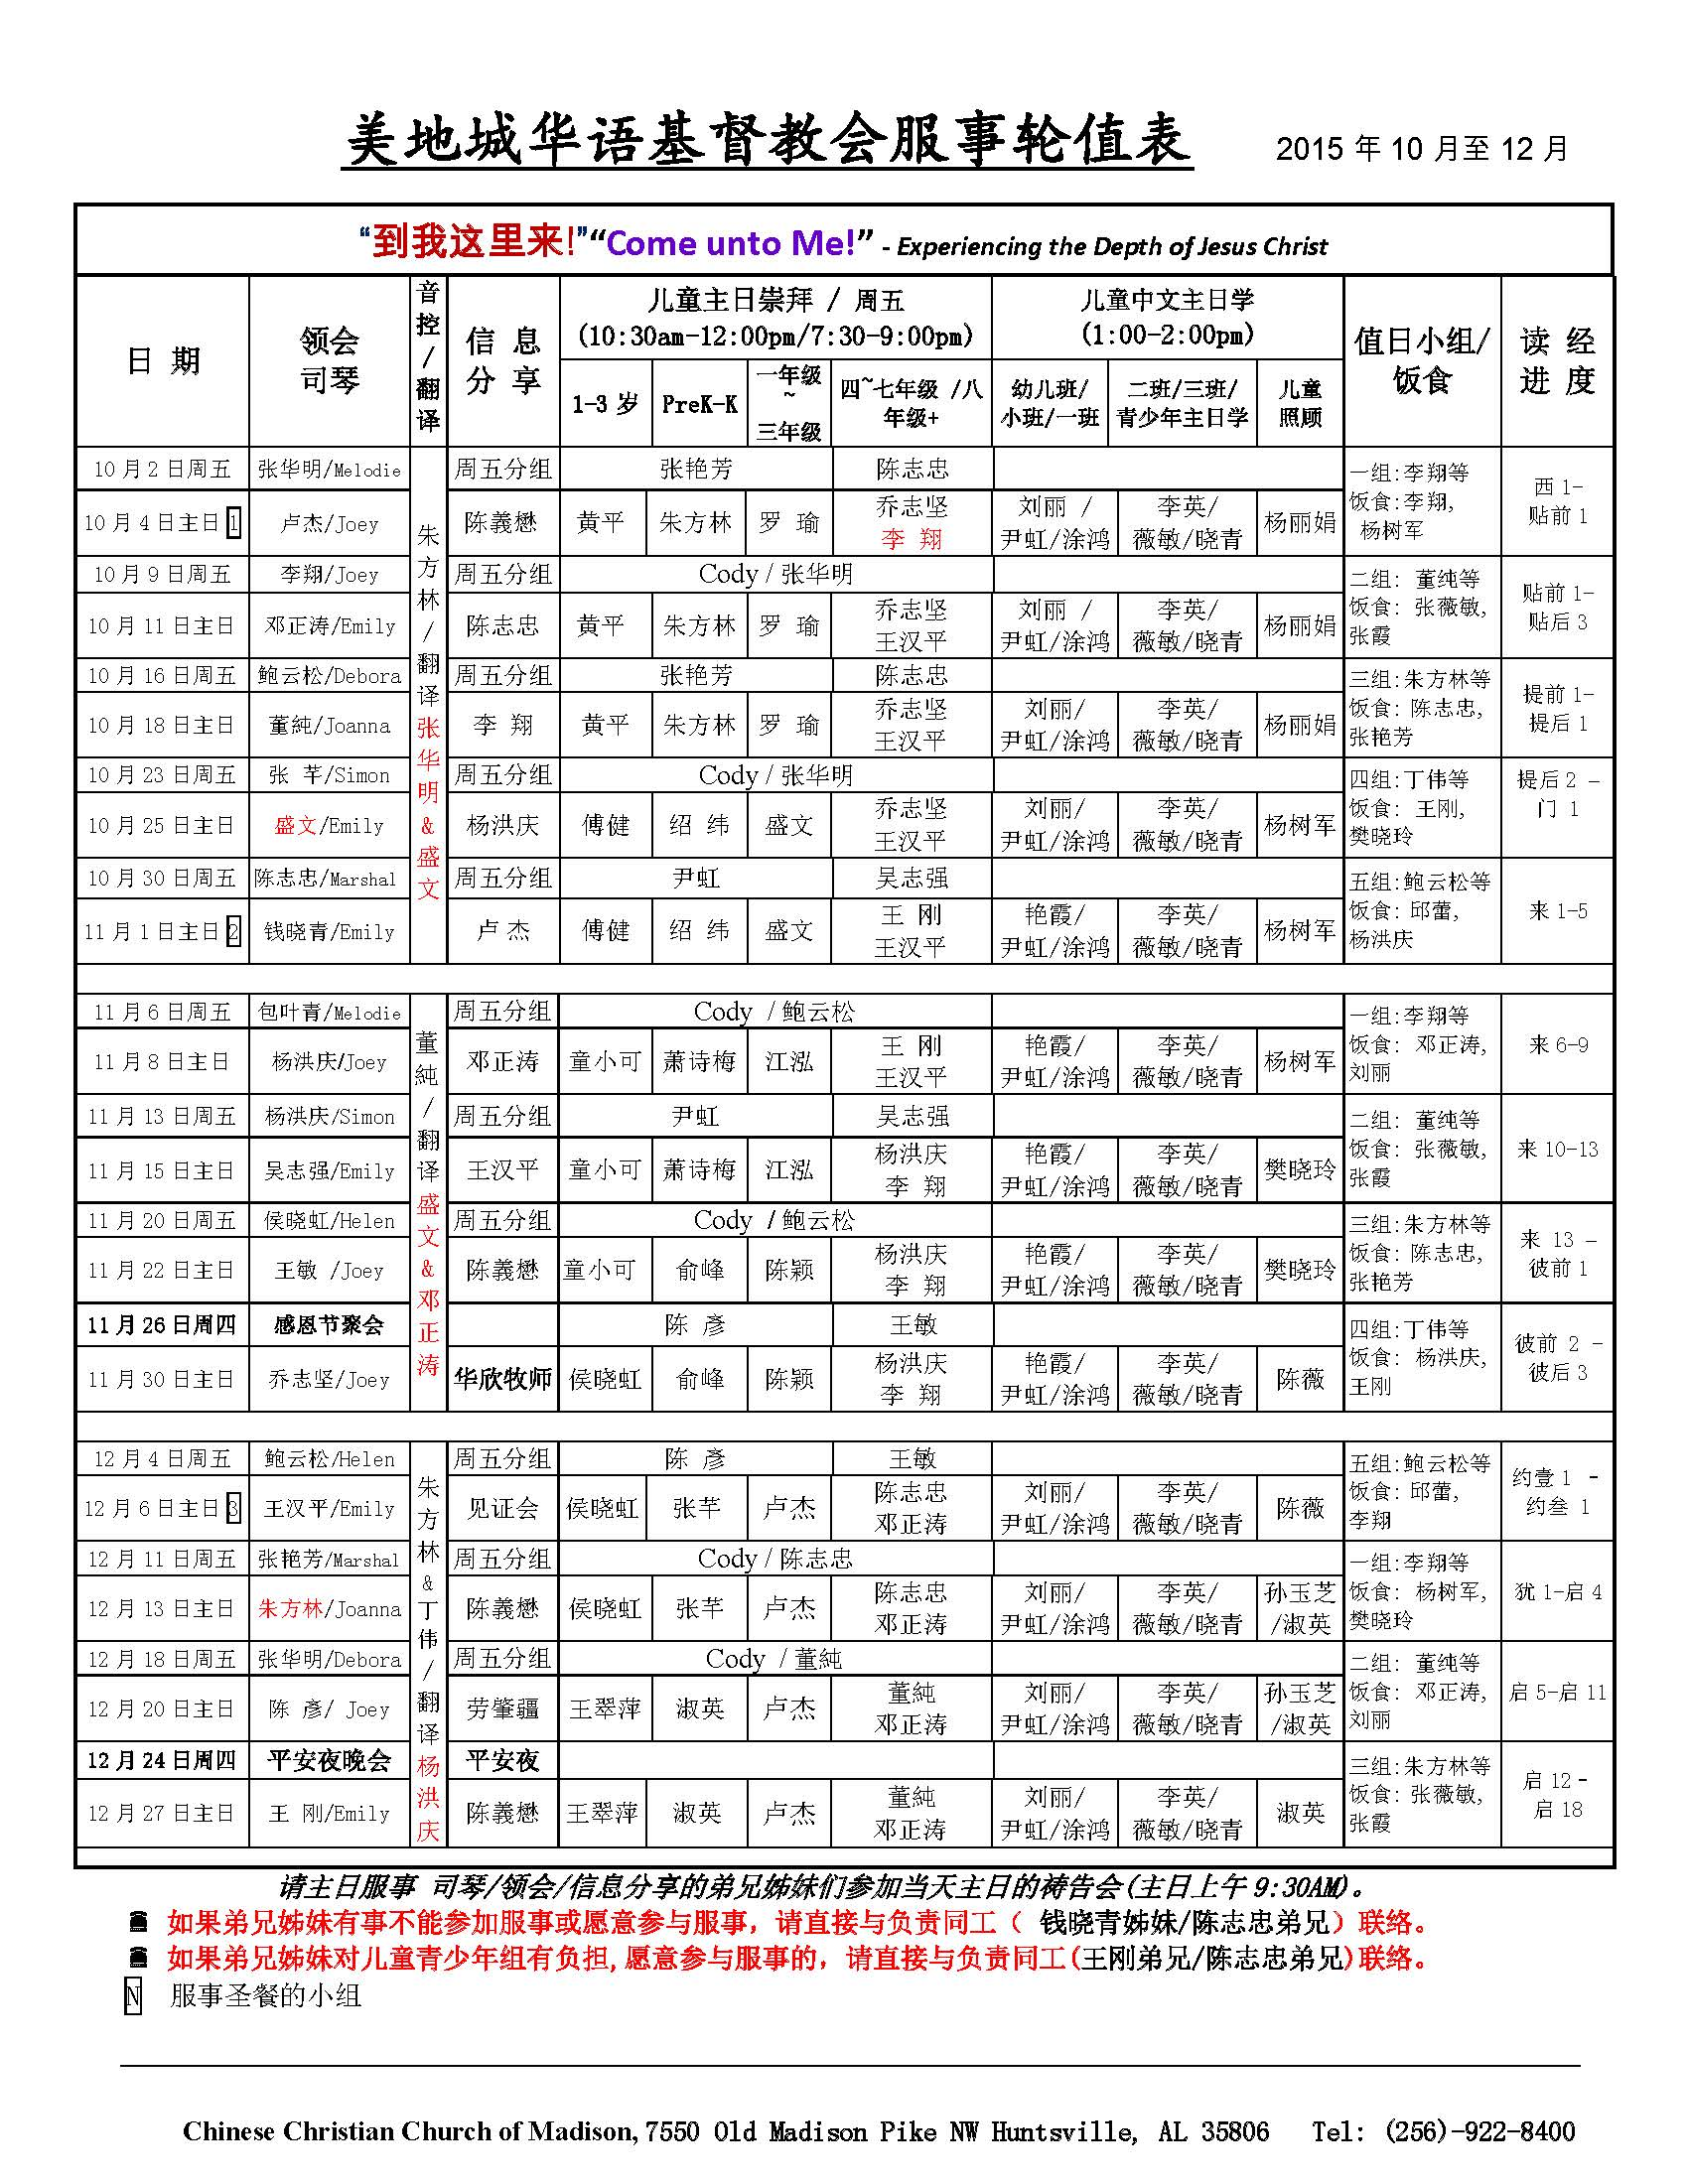 CCCM-Oct-Dec-2015-Schedule-V51.jpg